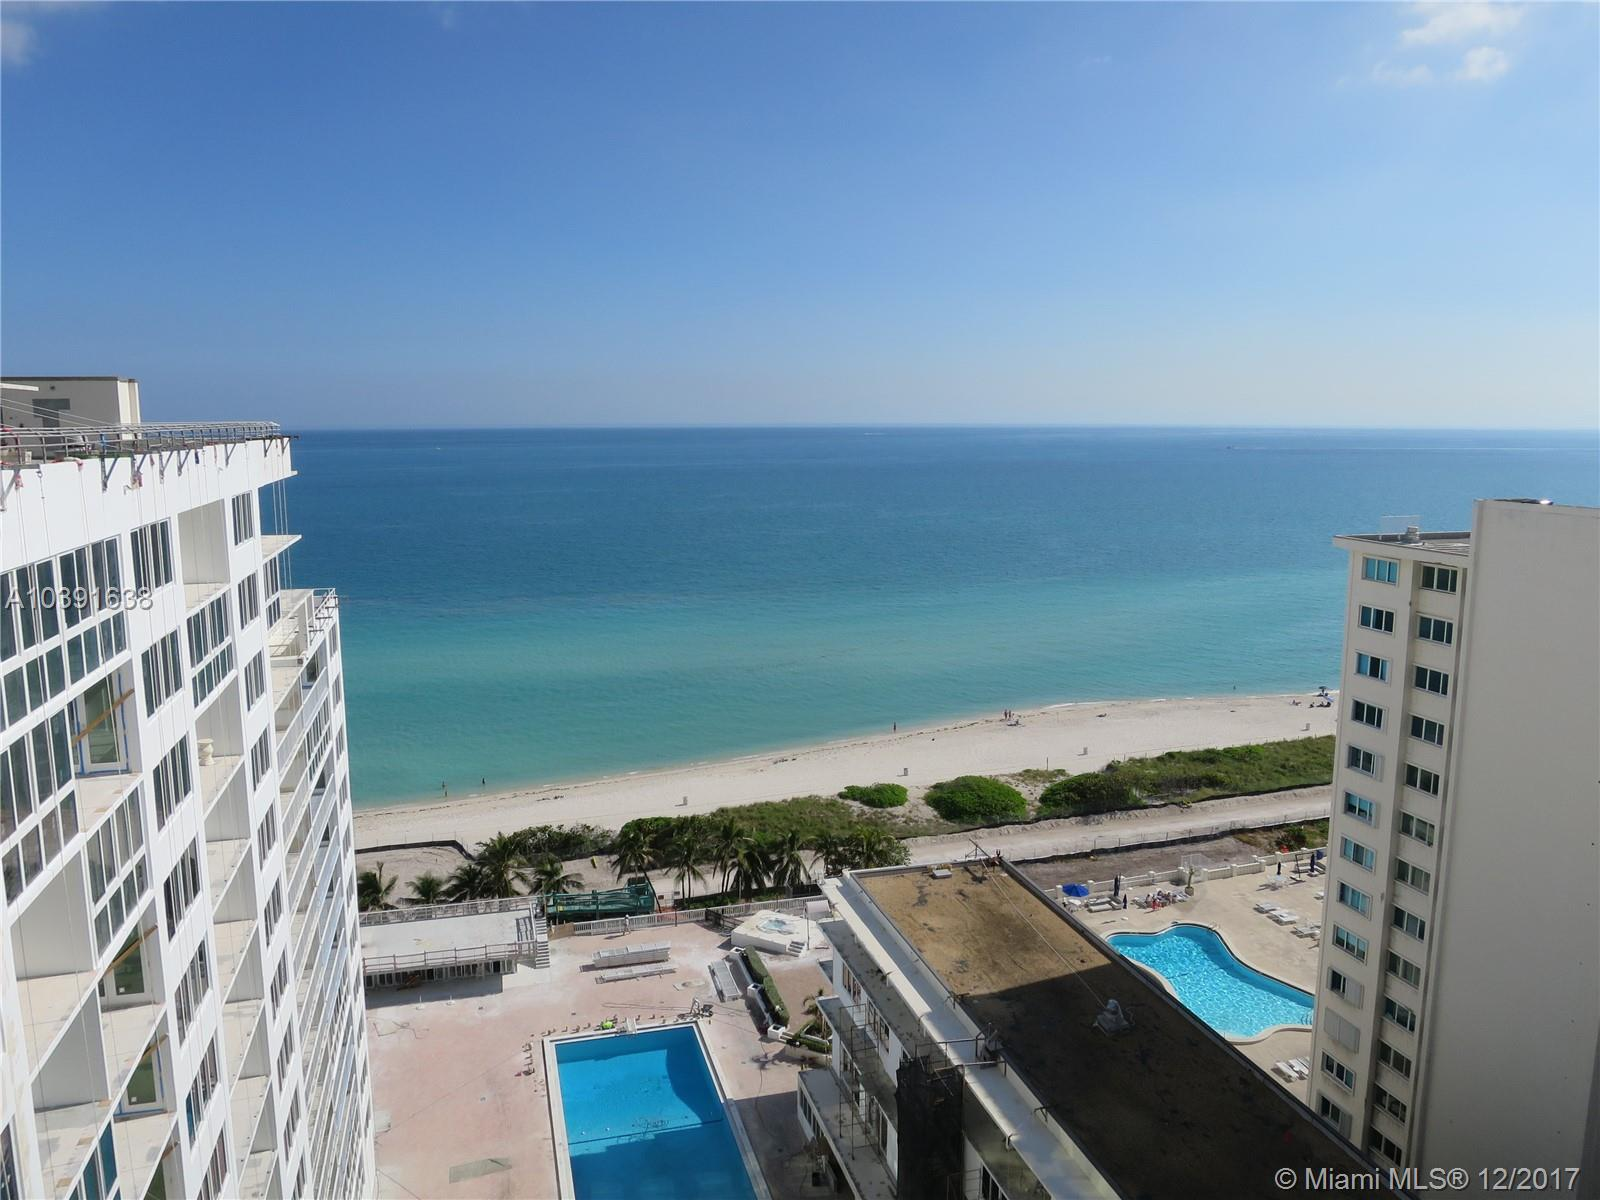 I+Ógé¼Gäóm Excited About This Property! +Ógé¼-ª Now Let Me Tell You Why!... Direct Ocean Front - 5/4 + Maids Room, 2, 620/Sf + 1, 400/Sf Balcony (56+Ógé¼Gäóx25'), 9.6+Ógé¼Gäó Ceiling, Maint = $1, 425/Mo, Kosher Kitchen/Granite Counters/Sub-Zero/Bosch/Askar, Two Sound Systems (Inside & Outside), Crown Molding, Outside Storage Room, 1 Assigned Parking Space + Valet, New Hurricane Windows & Doors - Building Undergoing A $20M Renovation - December 2019 Completion Date, Owners Assessment $96, 030 - Paid In Full! +Ógé¼-ª+Ógé¼-ª+Ógé¼-ª+Ógé¼-ª All Buyers Must Preview Unbranded Video On Vt Before Showing!